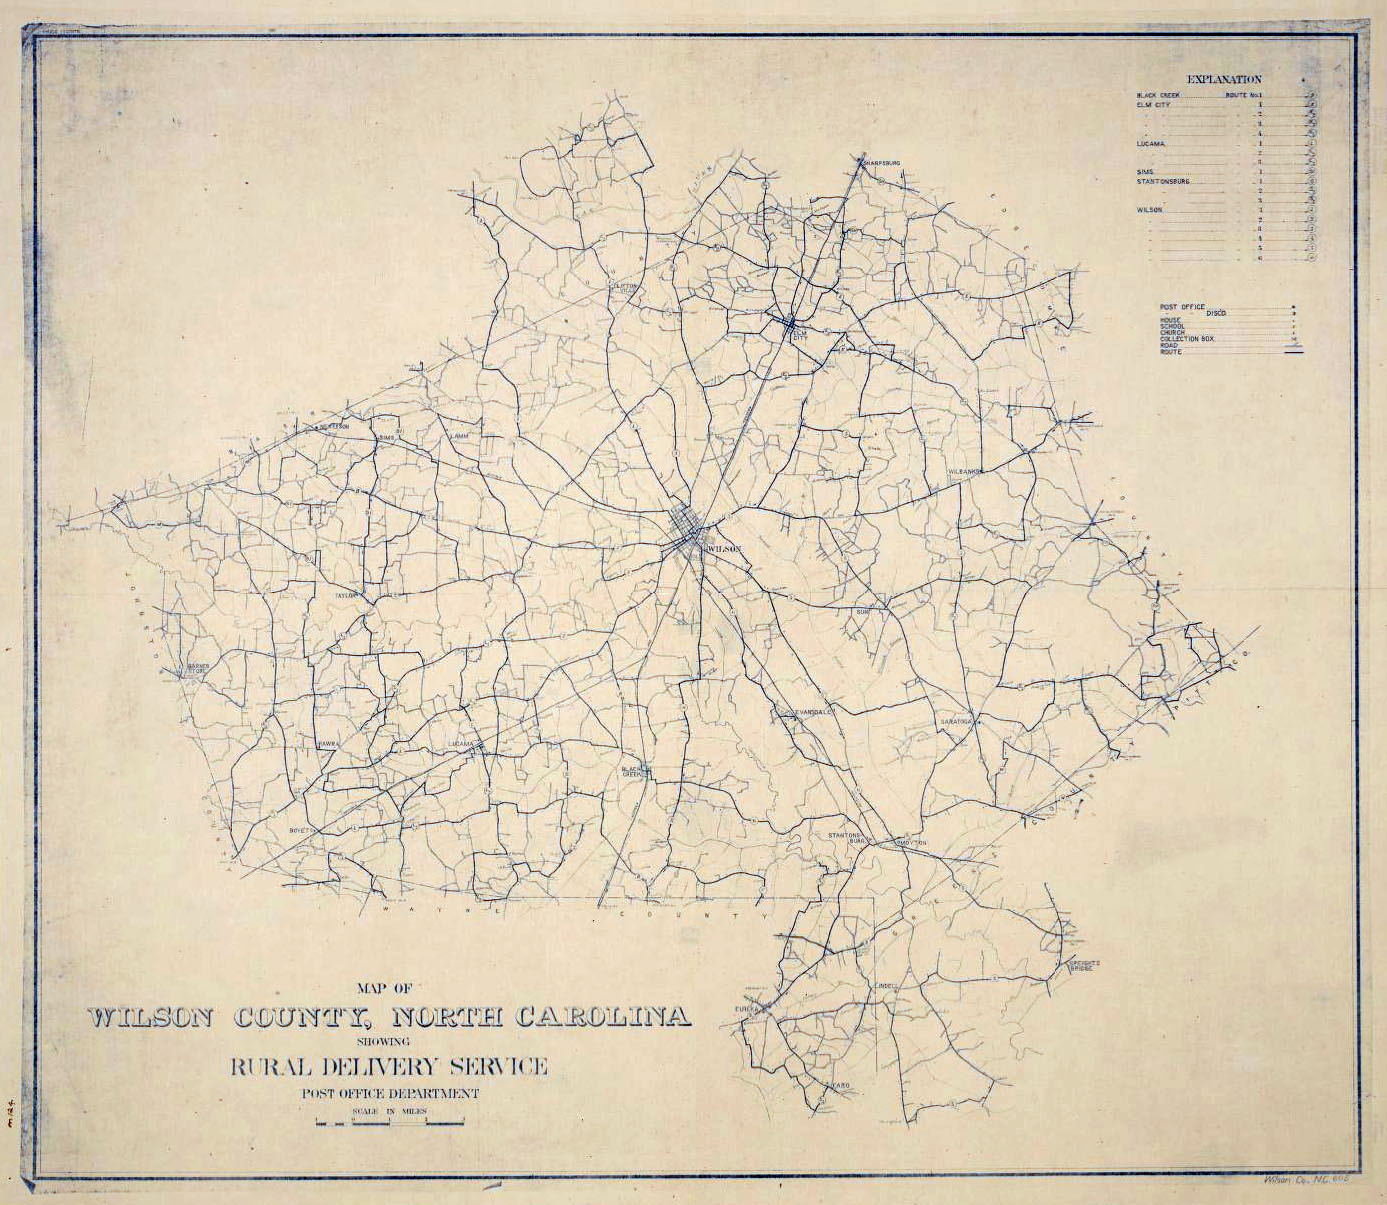 Map of Wilson County, North Carolina, showing rural delivery service